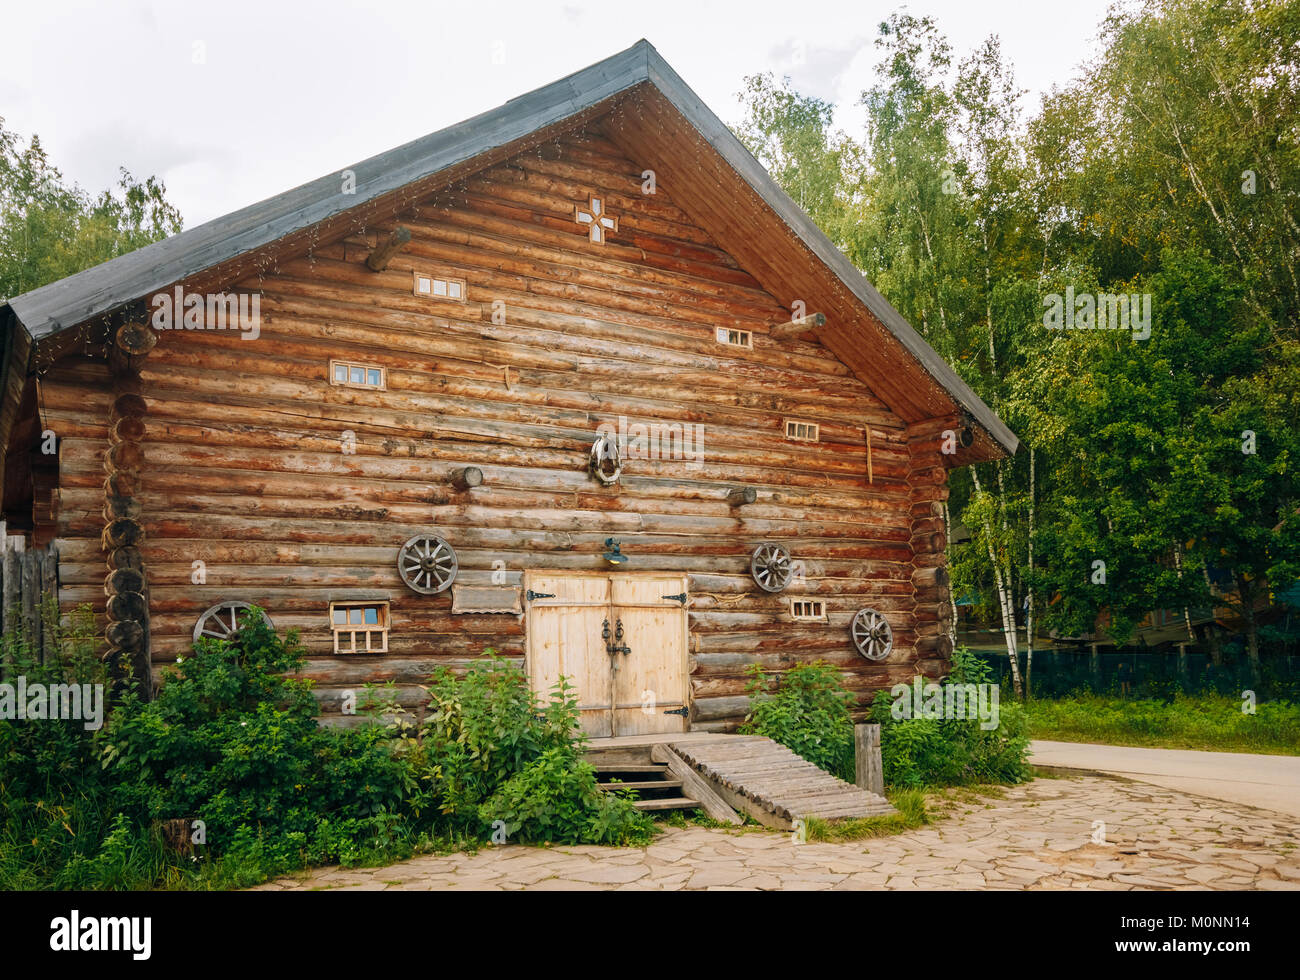 Wooden barn from a frame near the forest - Stock Image